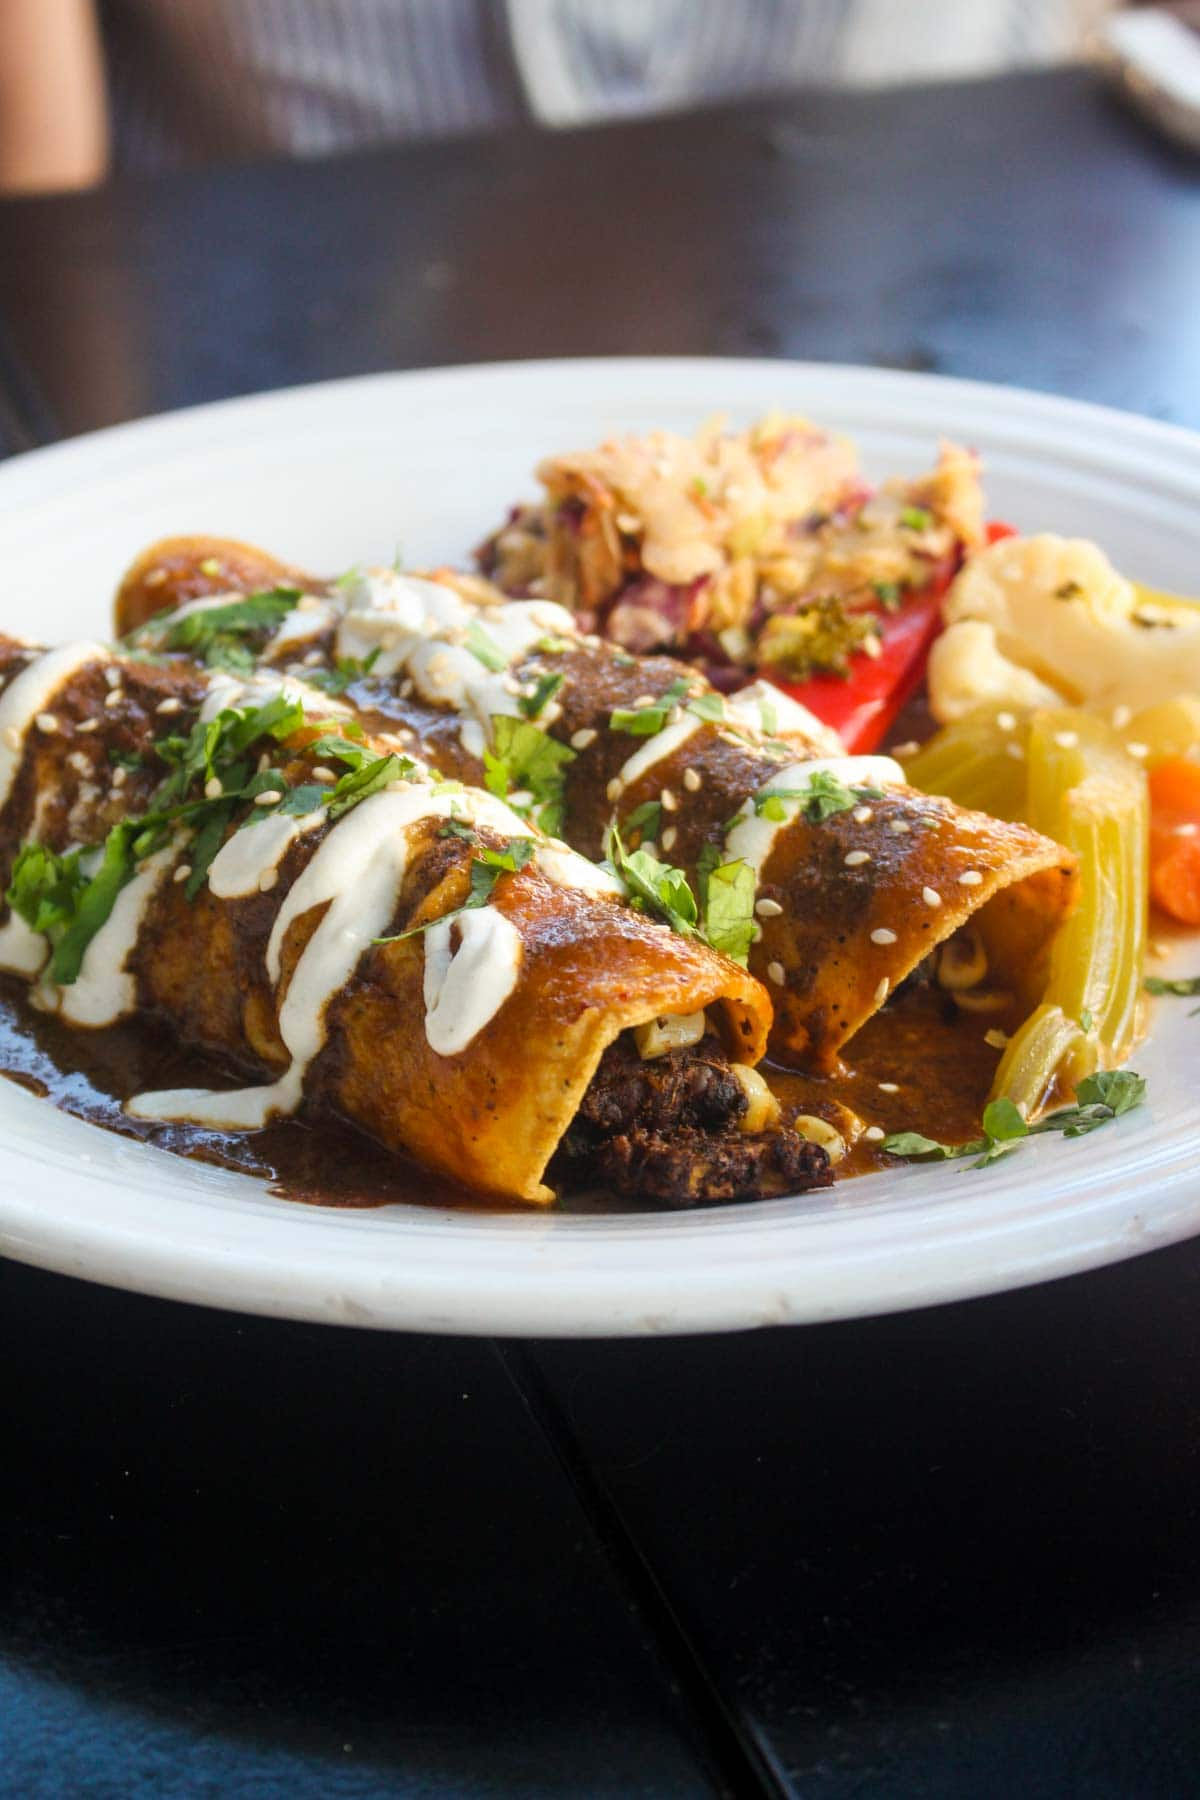 ThisSan Diego Plant Based Eating Guide is full of great restaurants to hit when staying in San Diego! All spots have vegan and gluten-free options, and some serve all styles of food to satisfy everyone in your crew. | CatchingSeeds.com